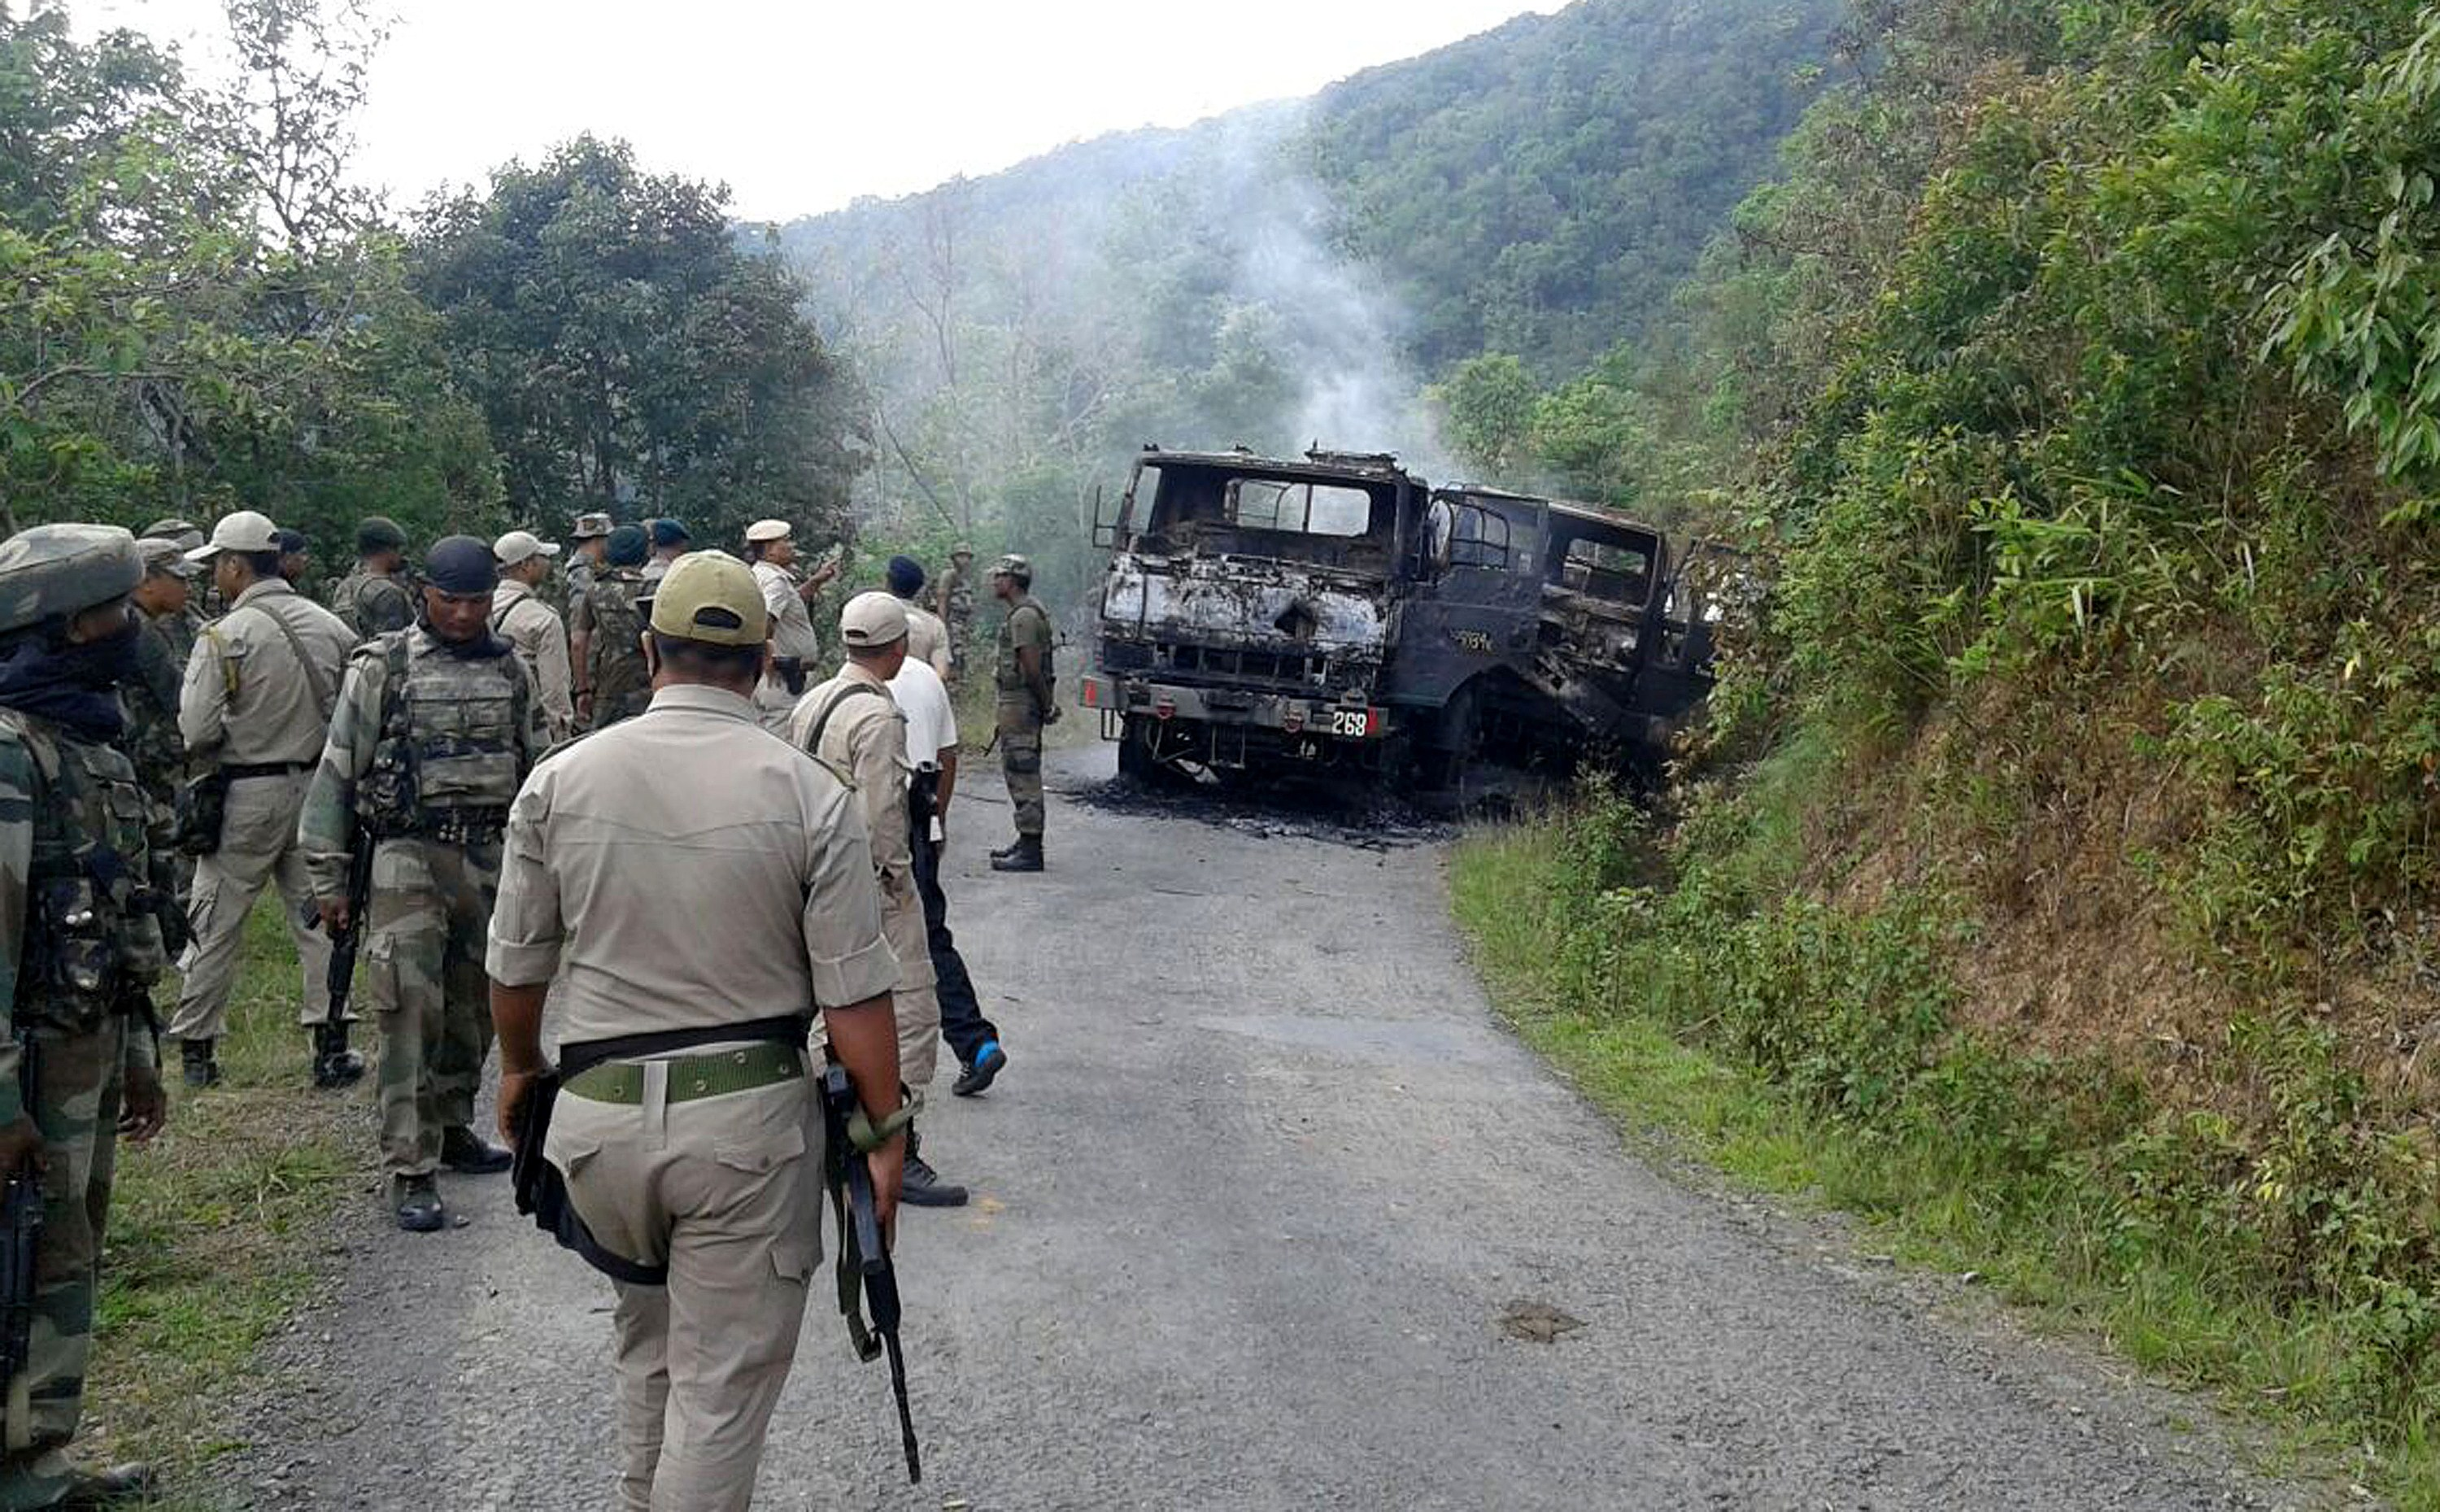 In this photograph taken on June 4, 2015, Indian security personnel stand alongside the smouldering vehicle wreckage at the scene of an attack on a military convoy in a remote area of Chandel district, about 120 kilometres (75 miles) southwest of northeastern Manipur's state capital Imphal.